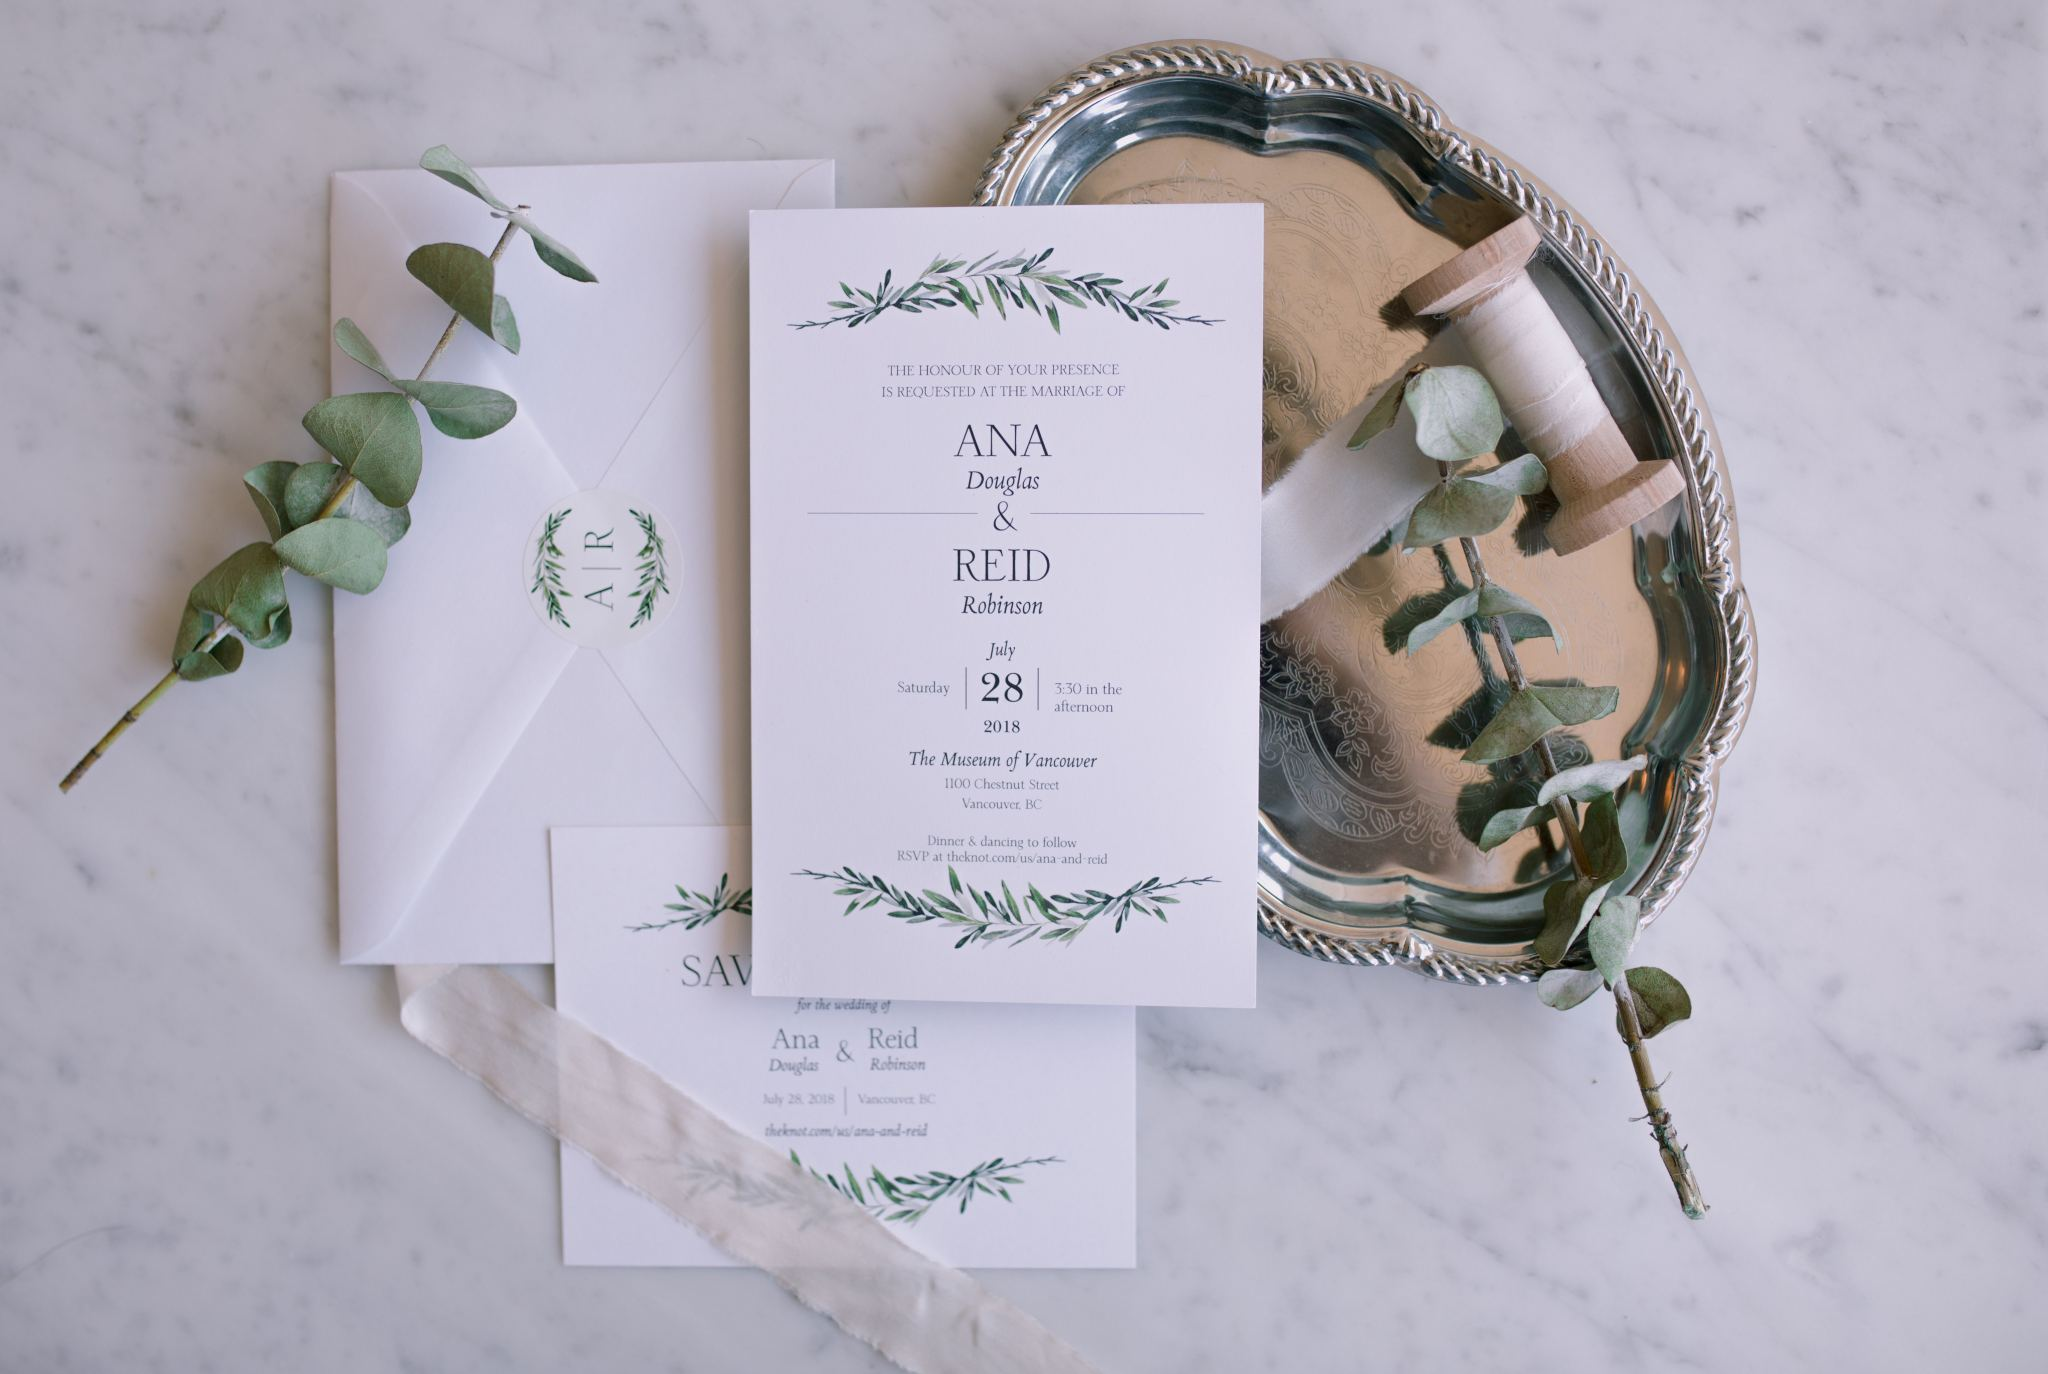 Wedding Invitations Vistaprint.Why I Chose Vistaprint For My Wedding Invitations Ana Douglas